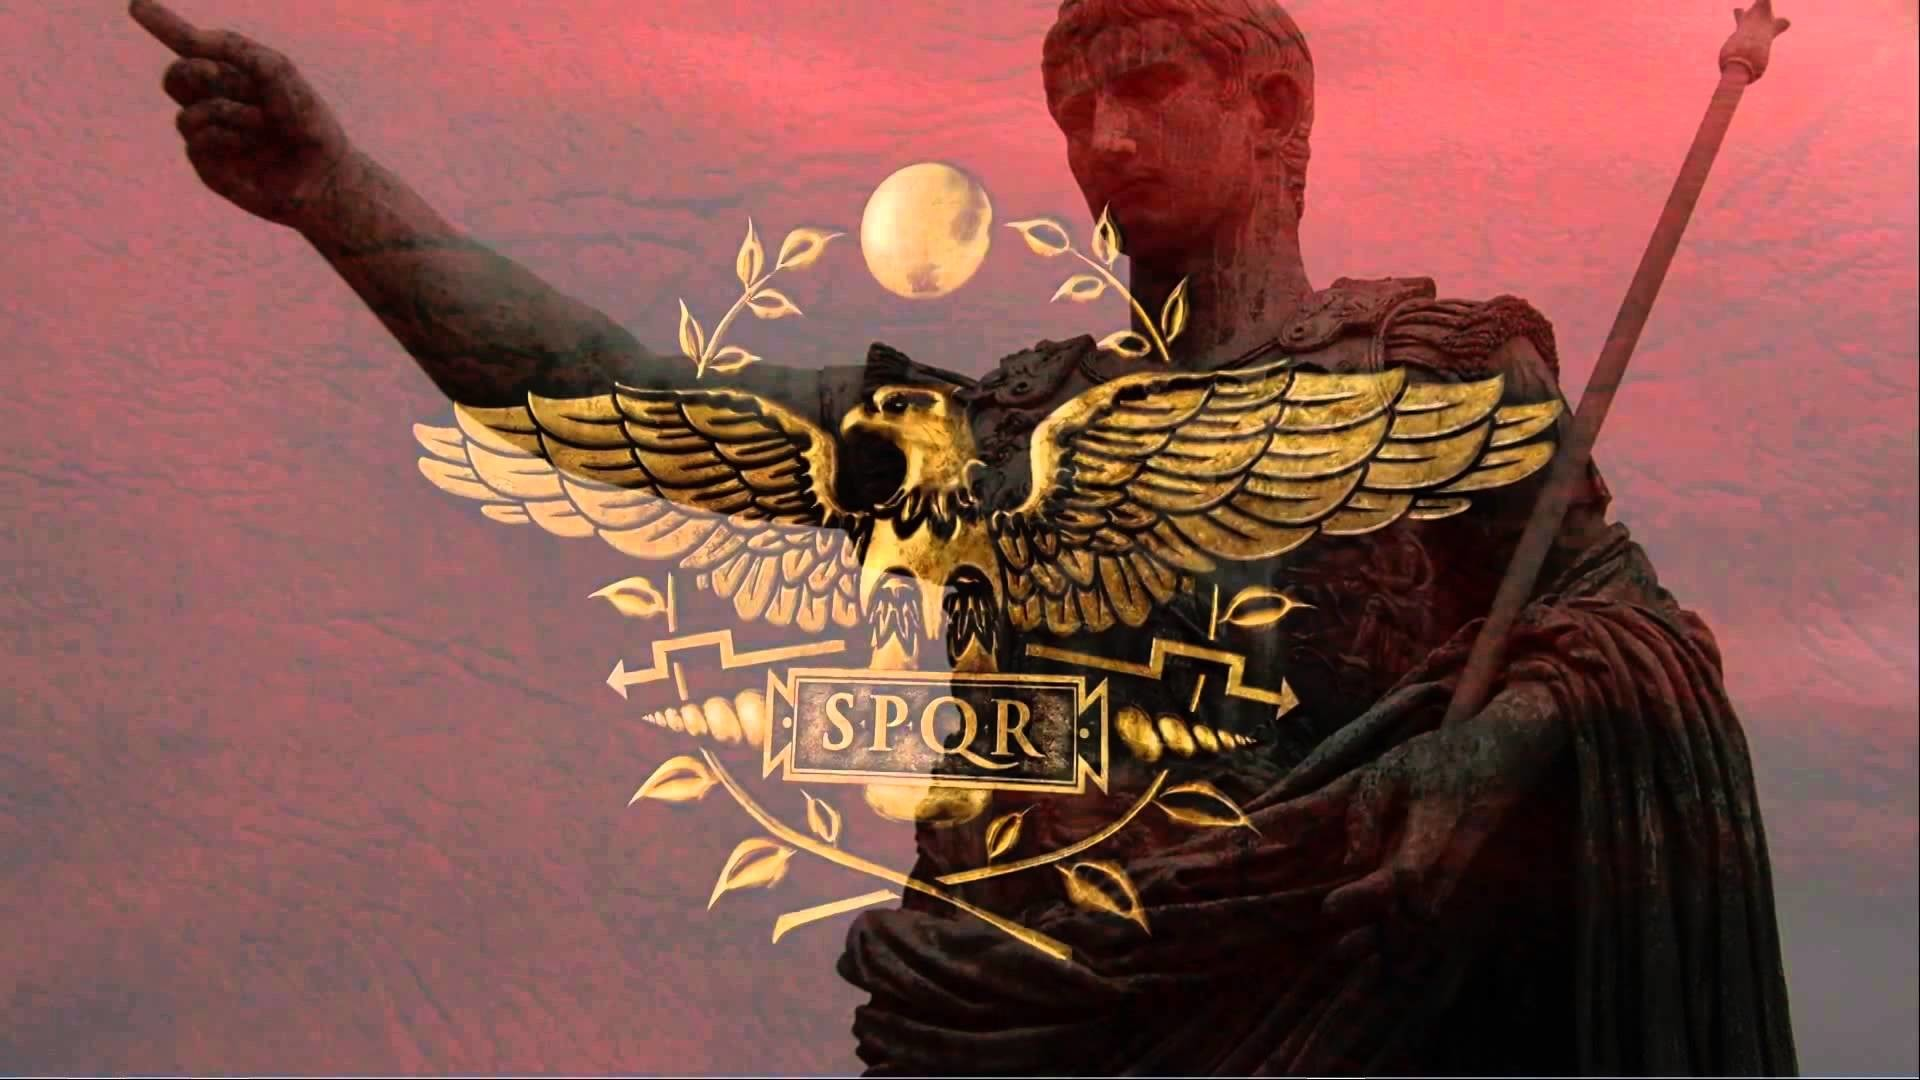 Res: 1920x1080, Senātus Populusque Rōmānus - The Roman Senate And The People